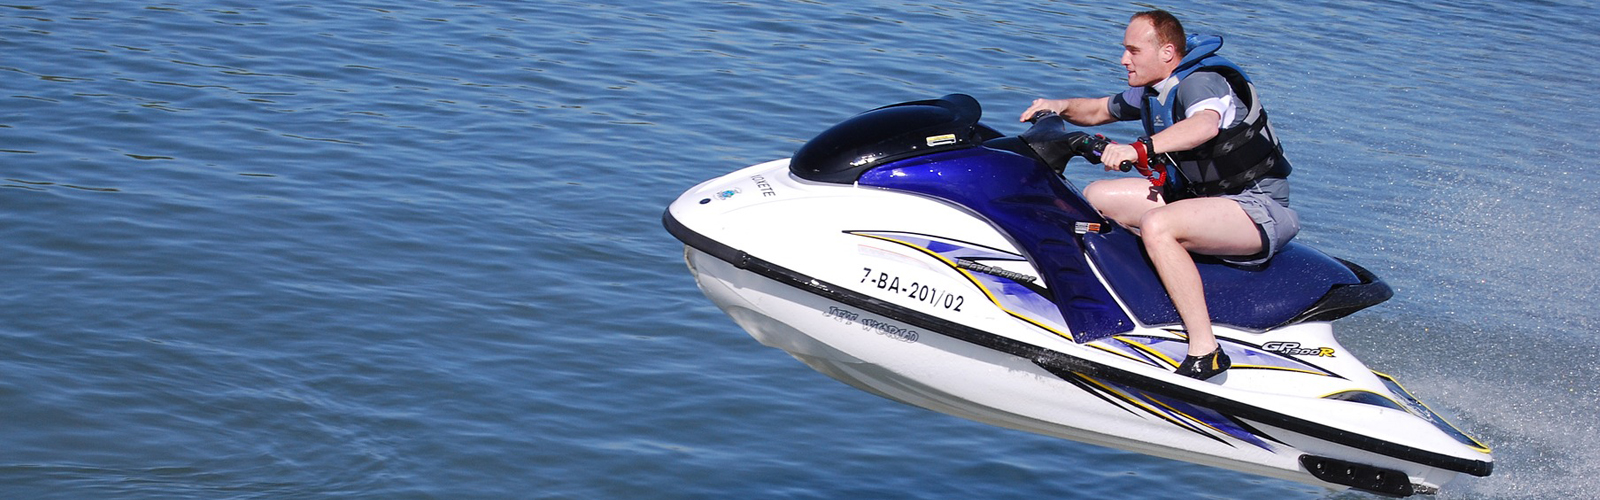 Flying Fish Personal watercraft course